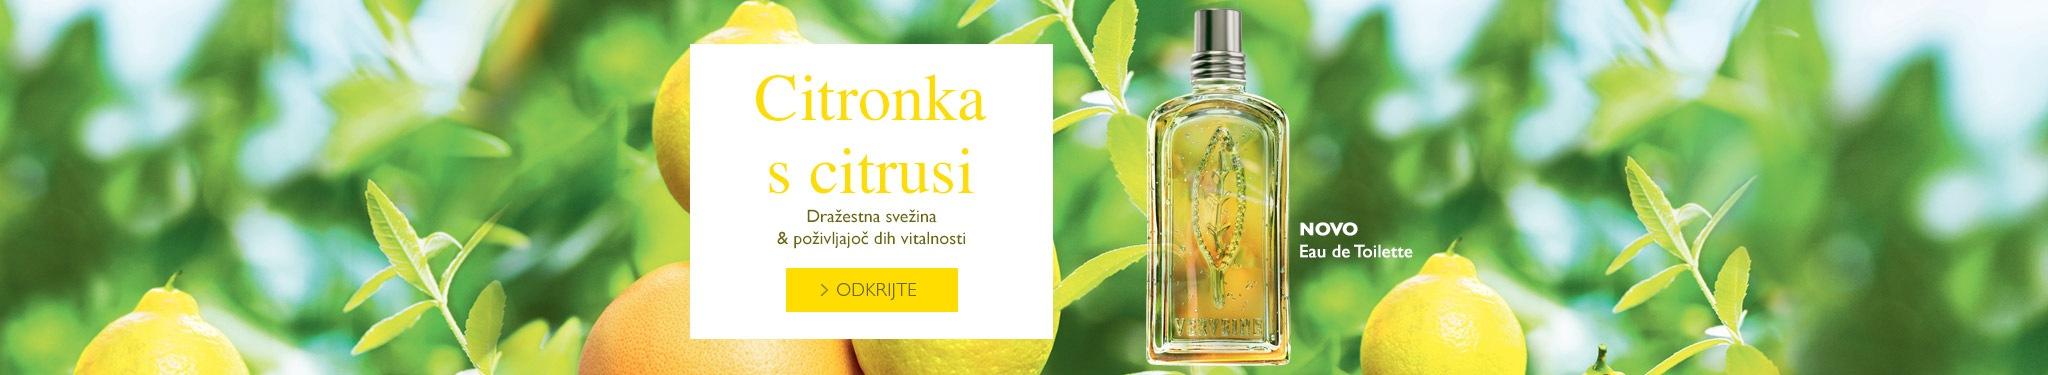 EDT CITRONKA S CITRUSI